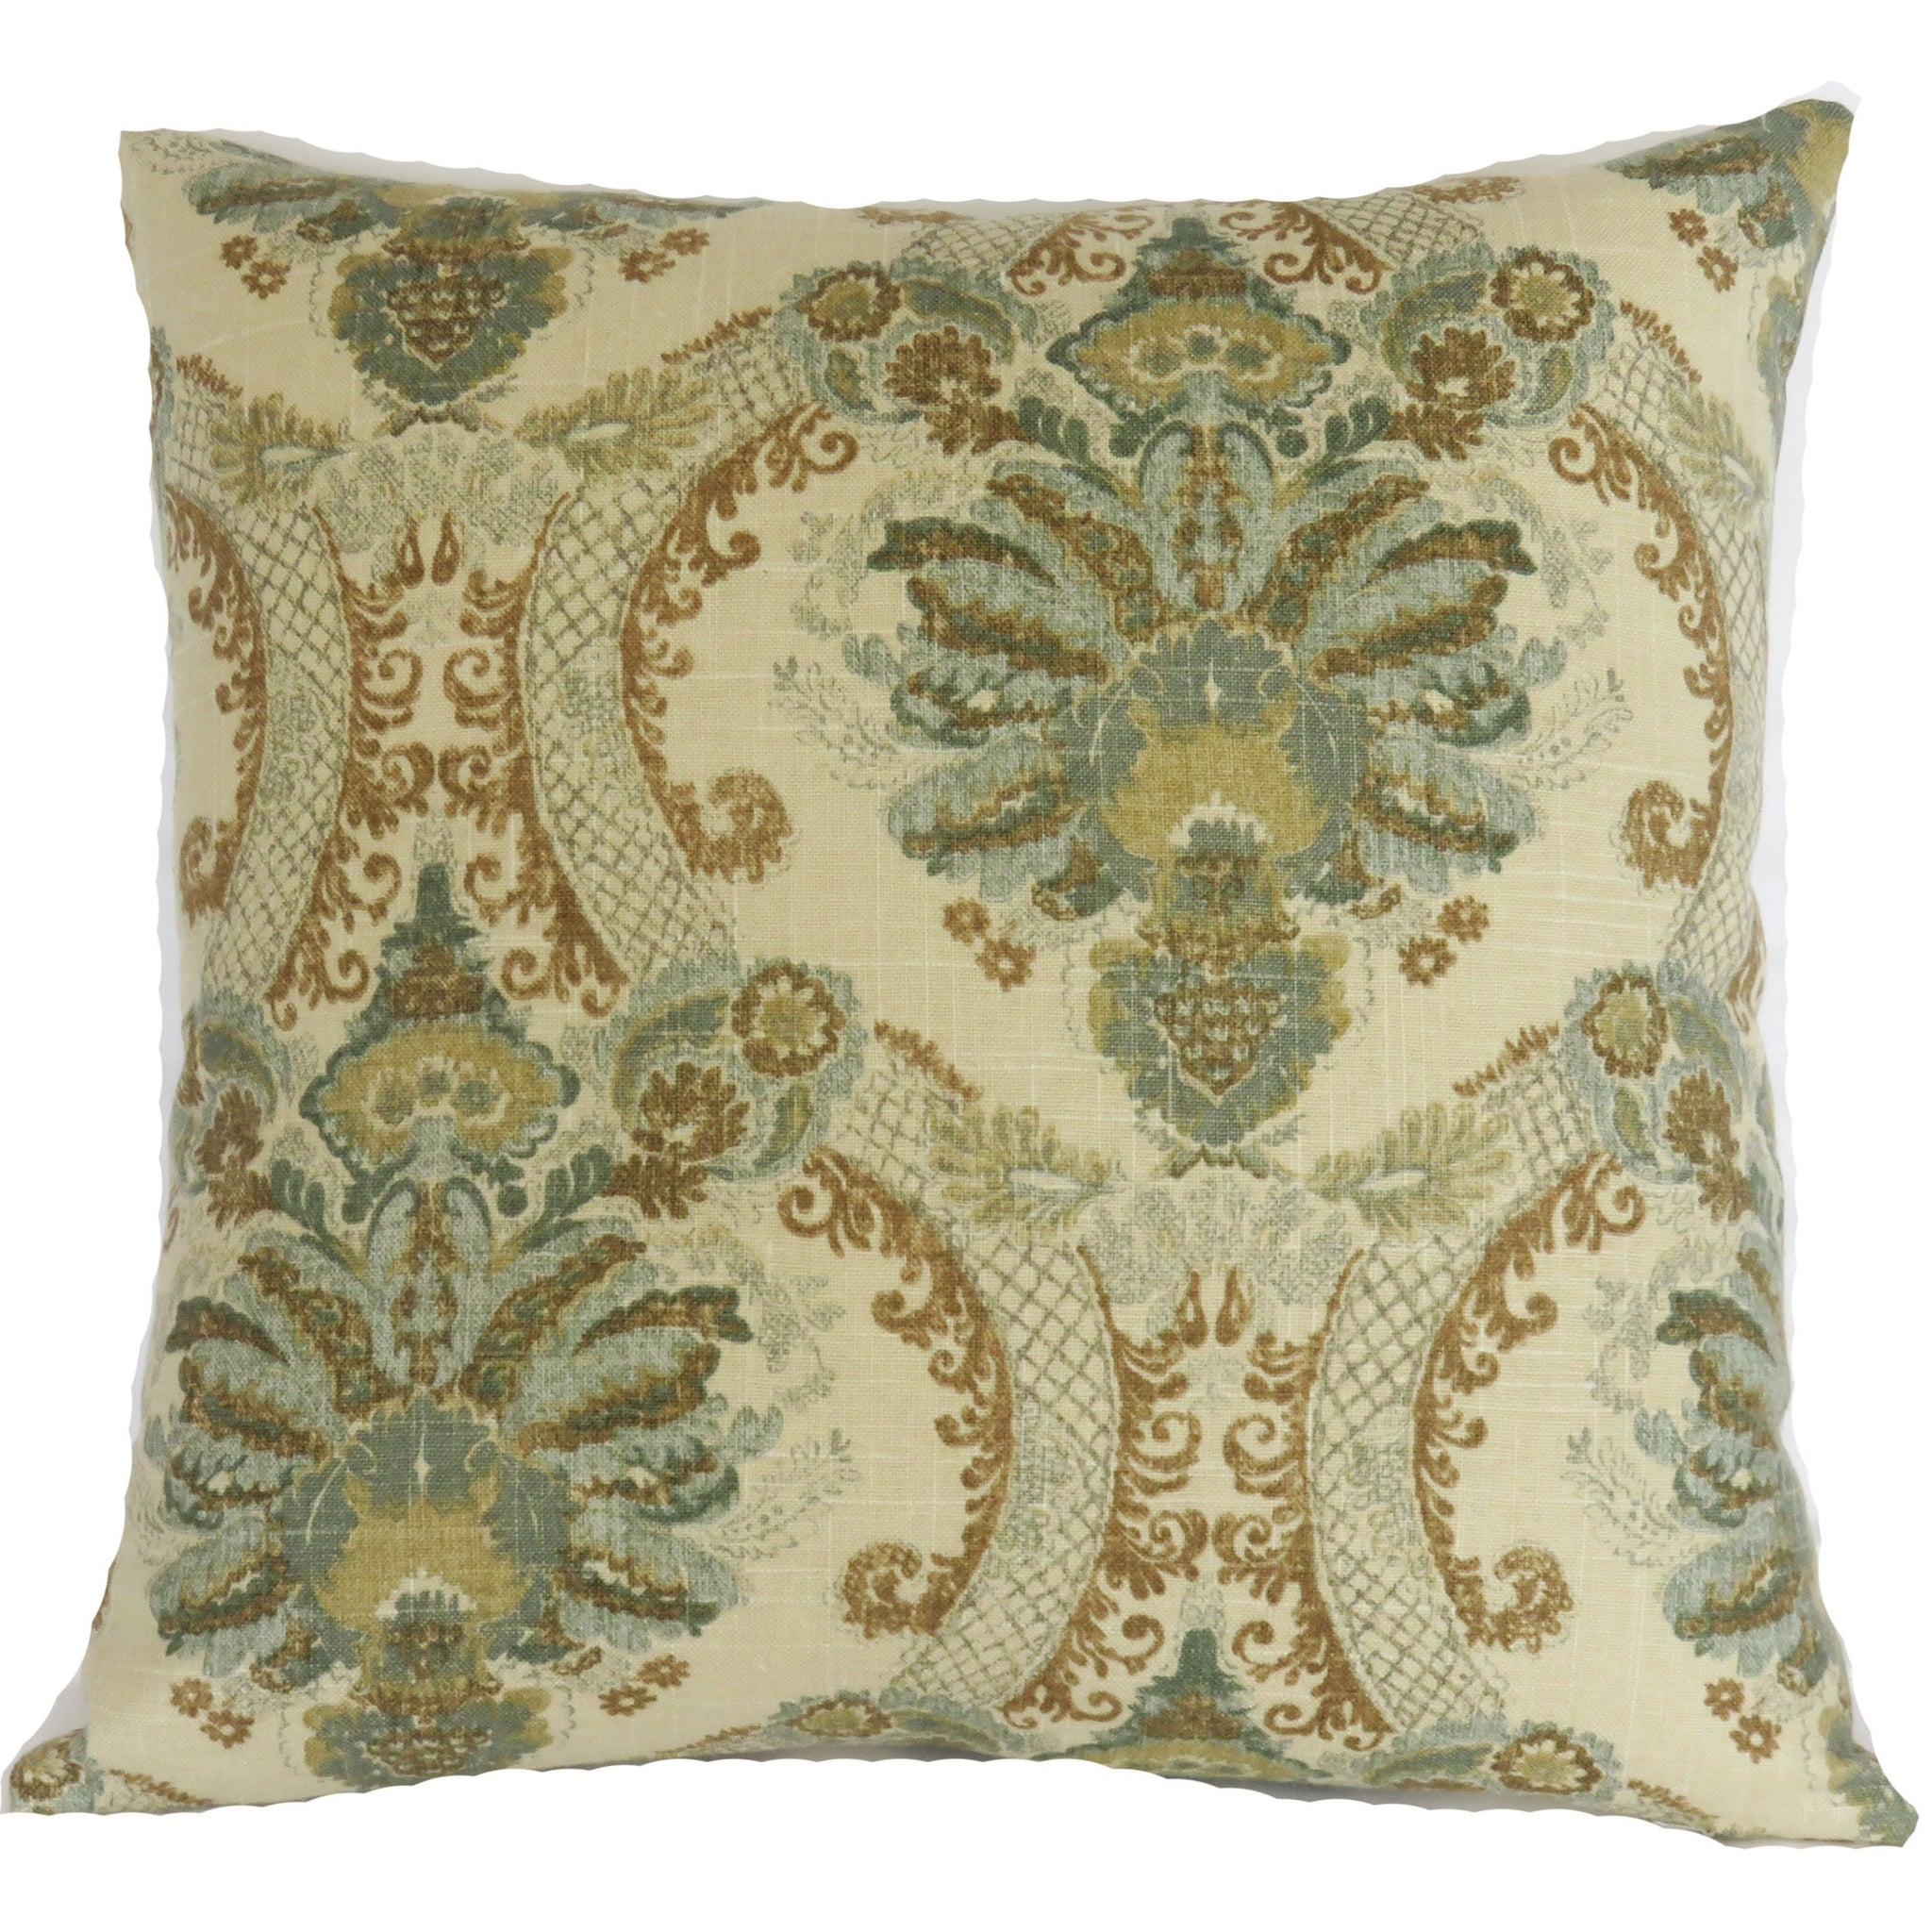 teal and gold damask pillow cover